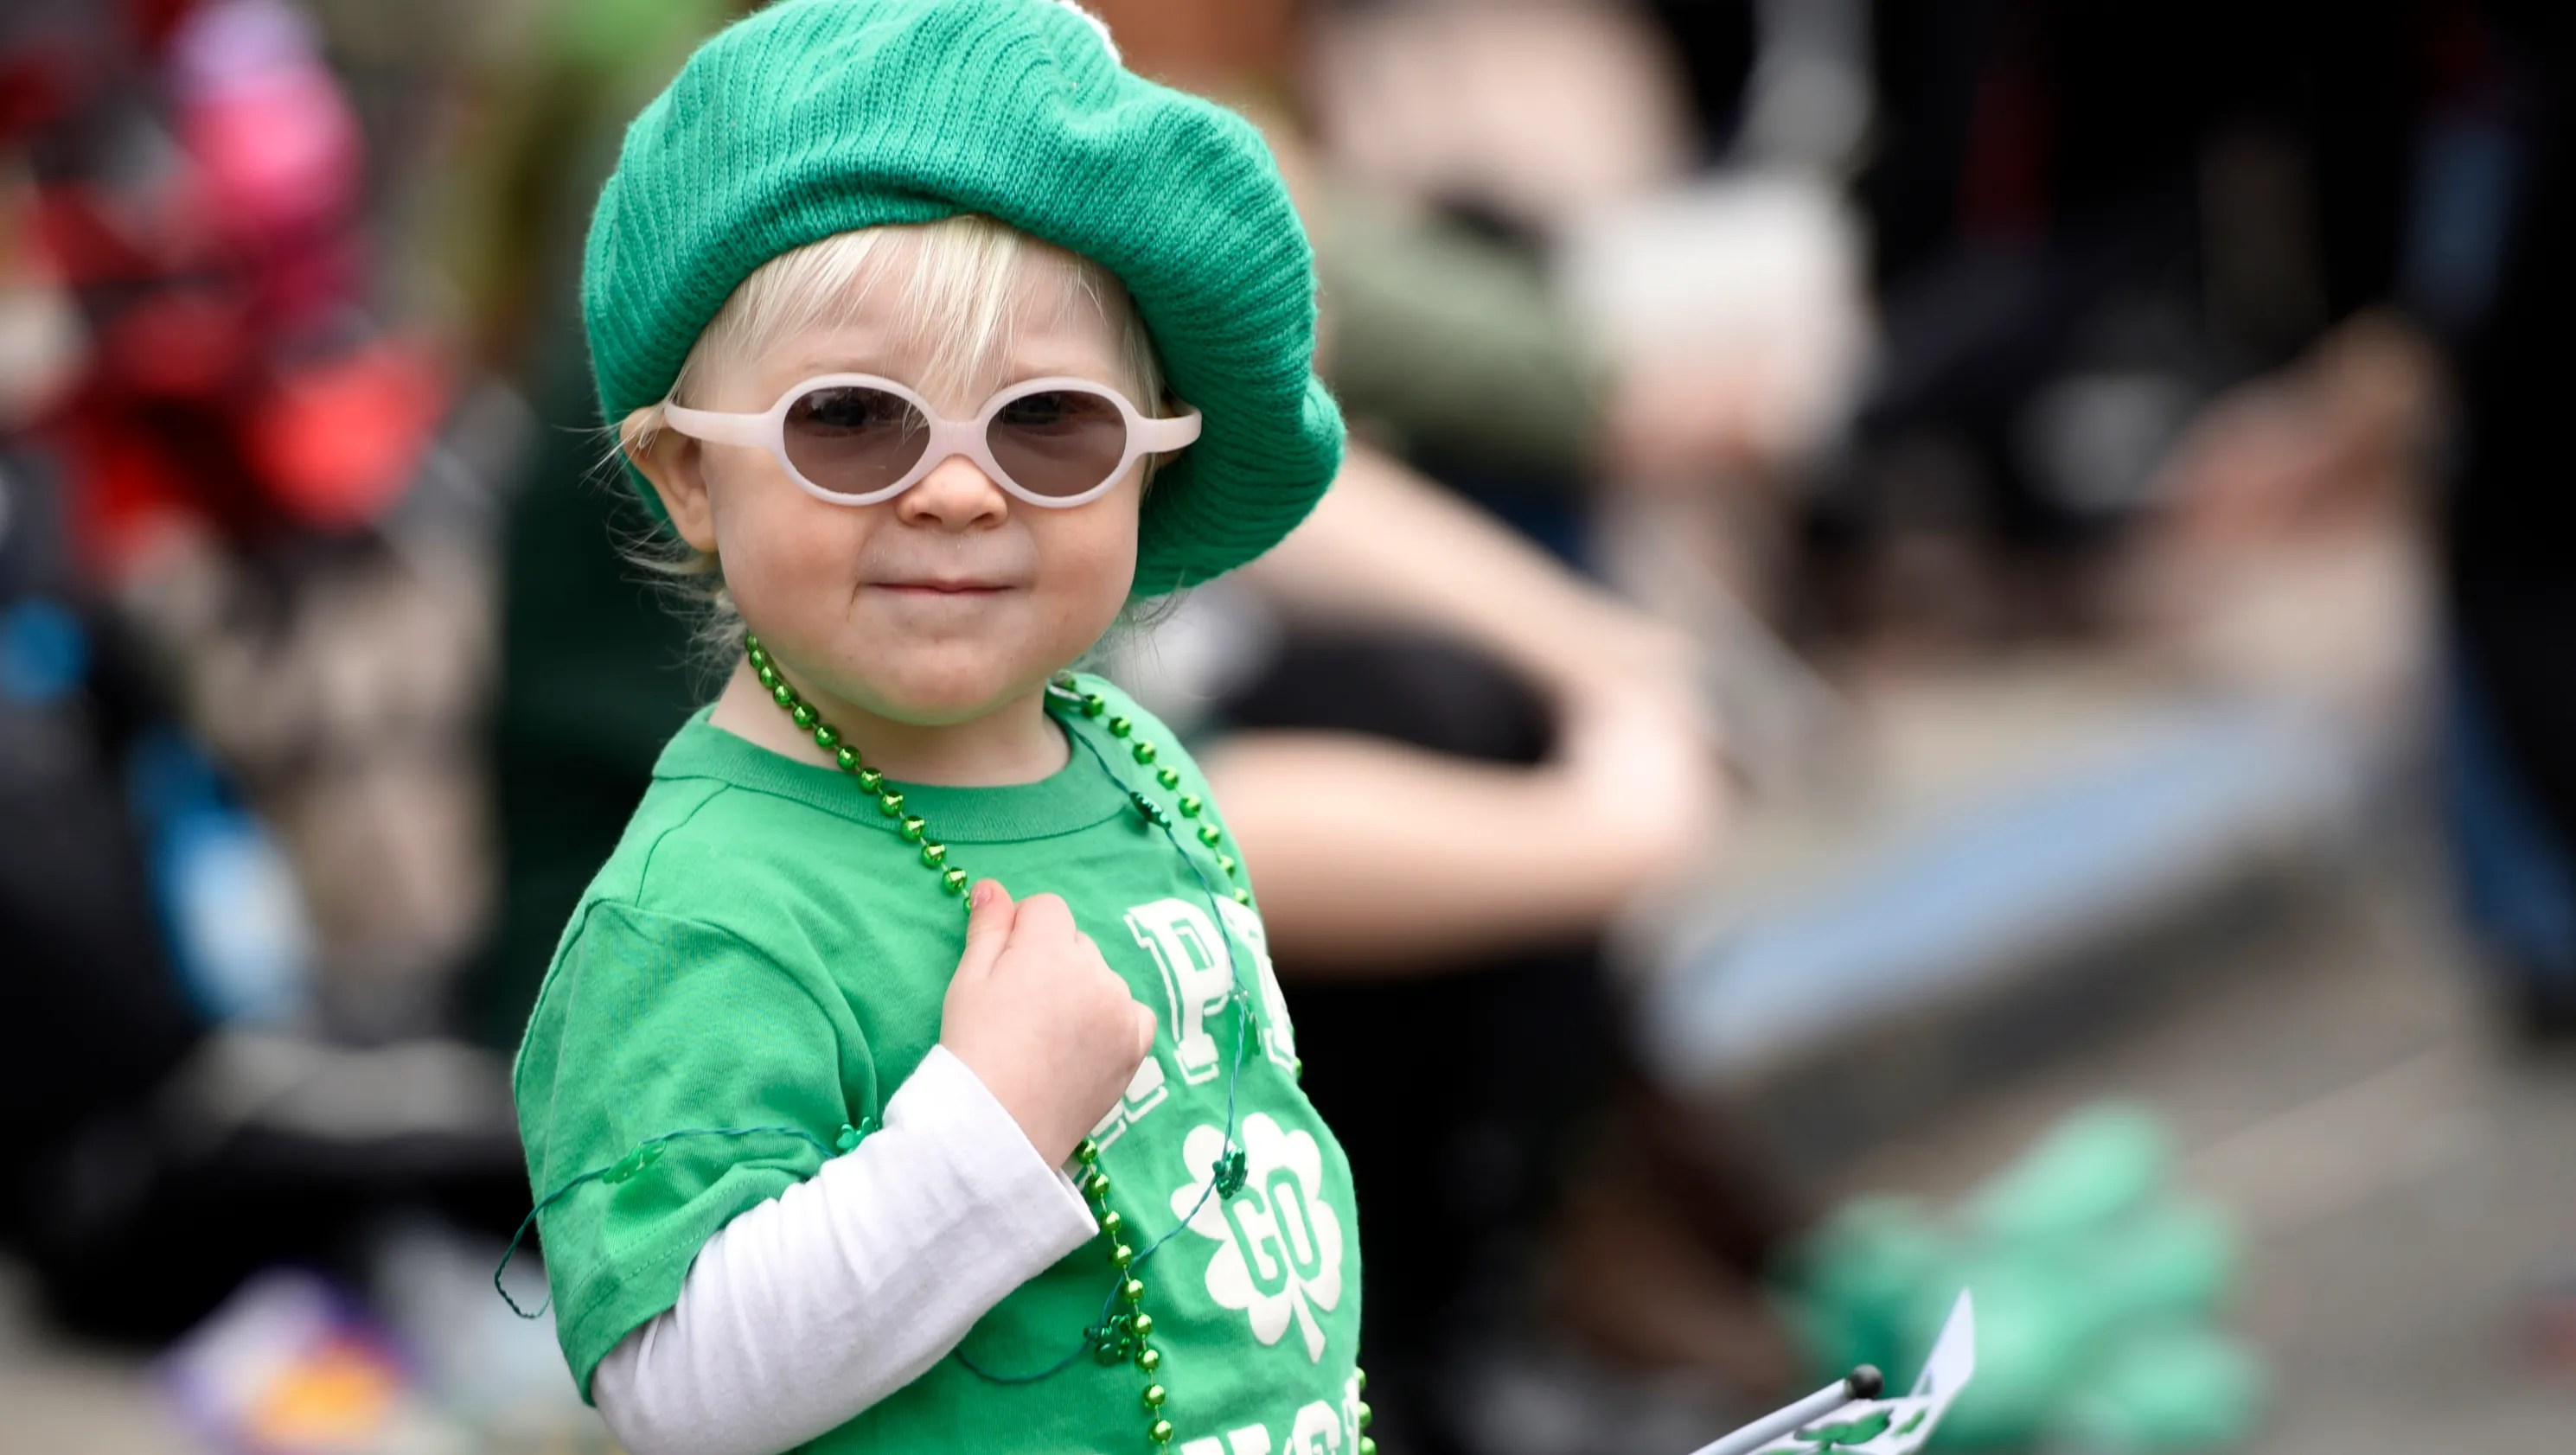 7 St Patrick S Day Traditions Explained